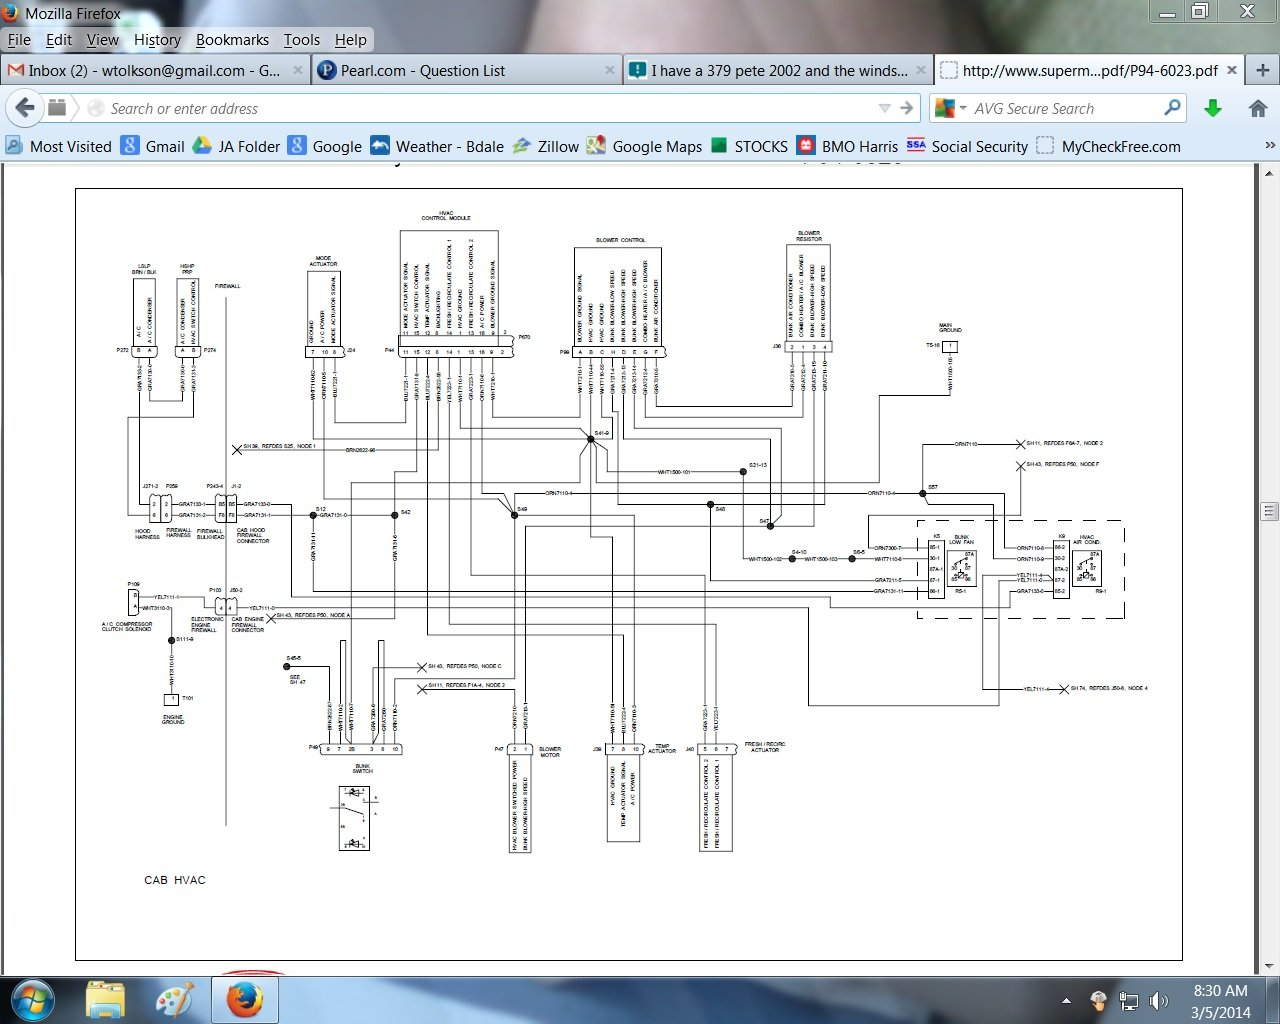 2014 03 05_143253_wipers h0856x88b wiring diagram,x \u2022 buccaneersvsrams co  at honlapkeszites.co